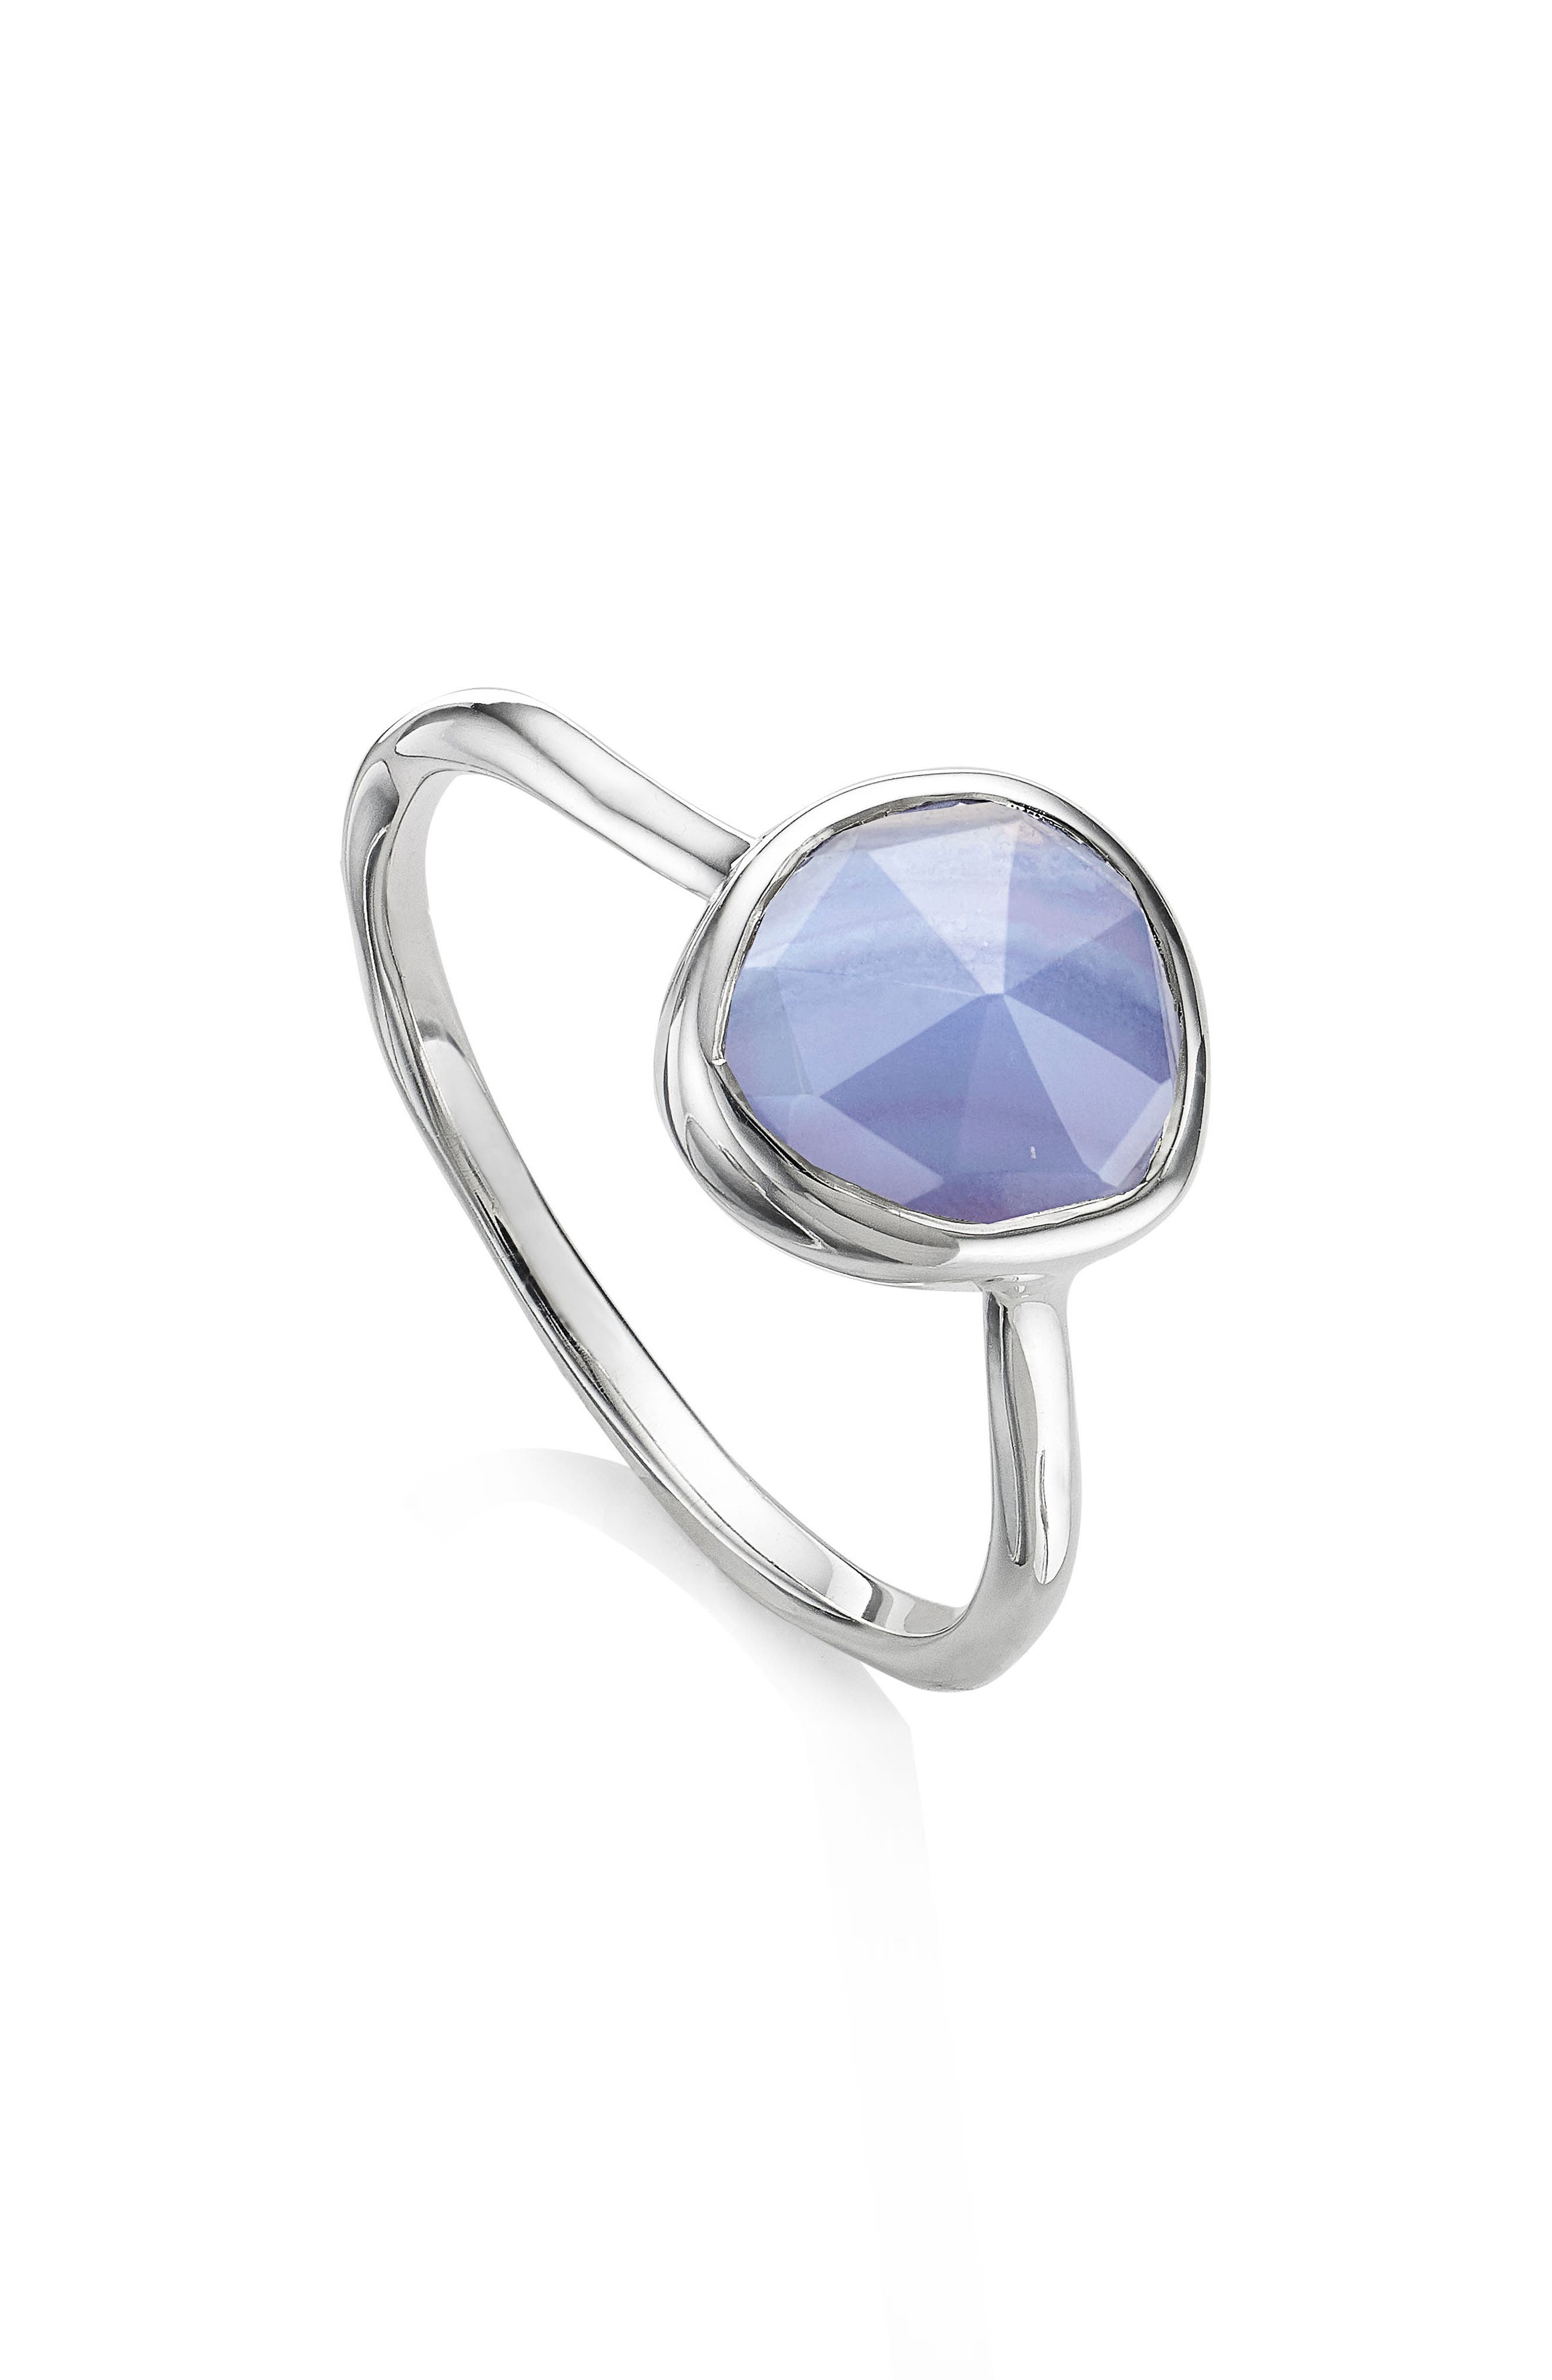 Siren Stacking Ring,                             Main thumbnail 1, color,                             Silver/ Blue Lace Agate